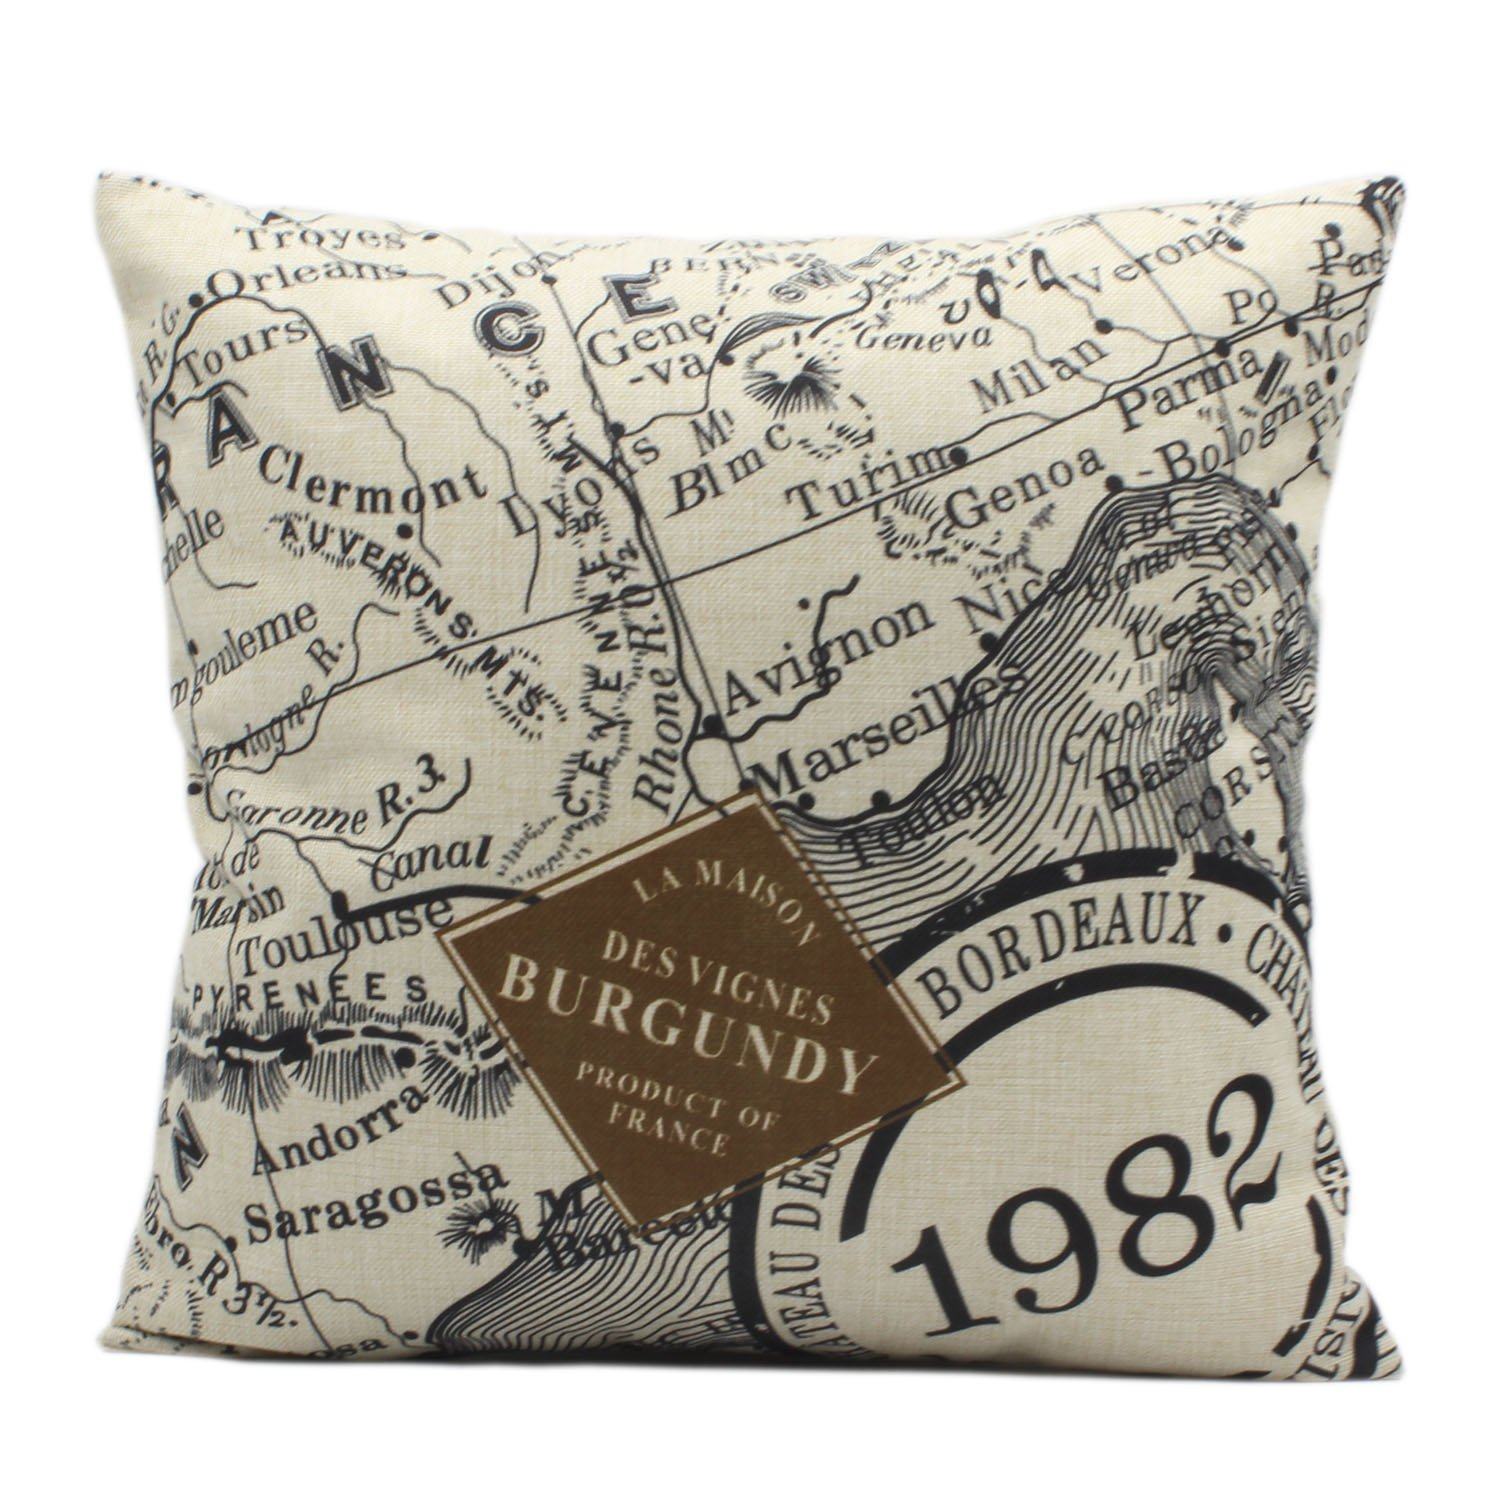 Jnroy Cotton Linen Decorative Square Throw Pillow Cases Covers Voyage With Zipper 18 Inches Only Pillow